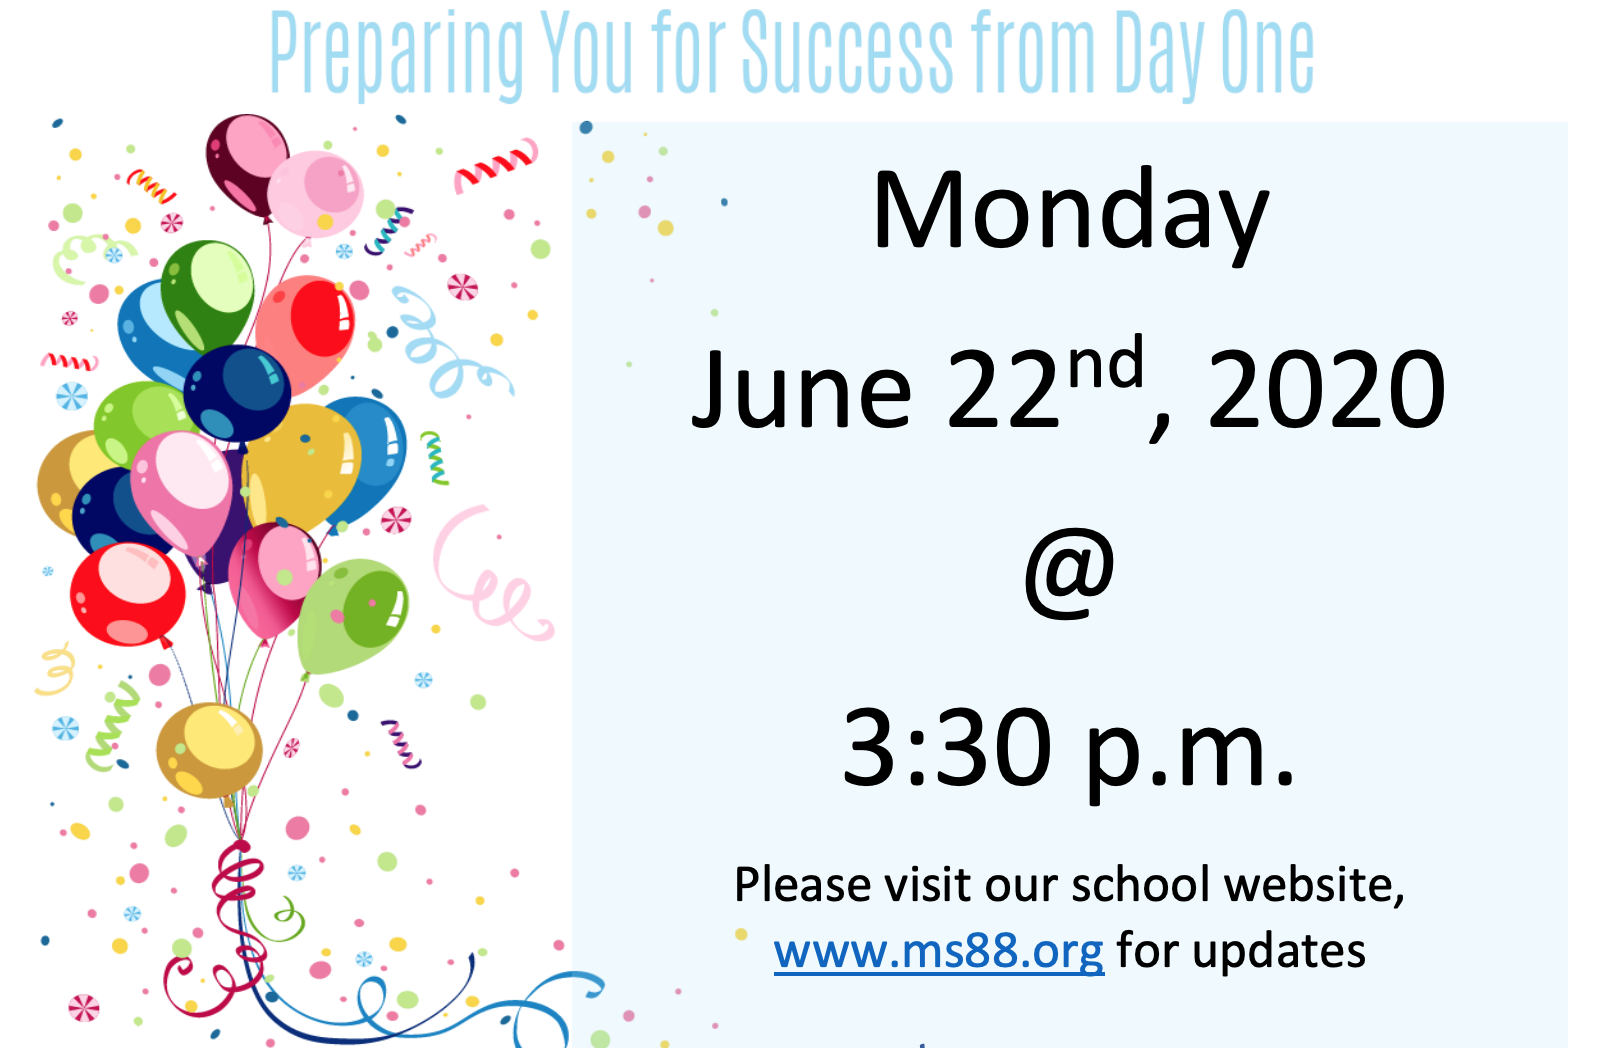 Preparing you for Success From Day One Monday June 22nd at 3:30.  Visit www.ms88.org